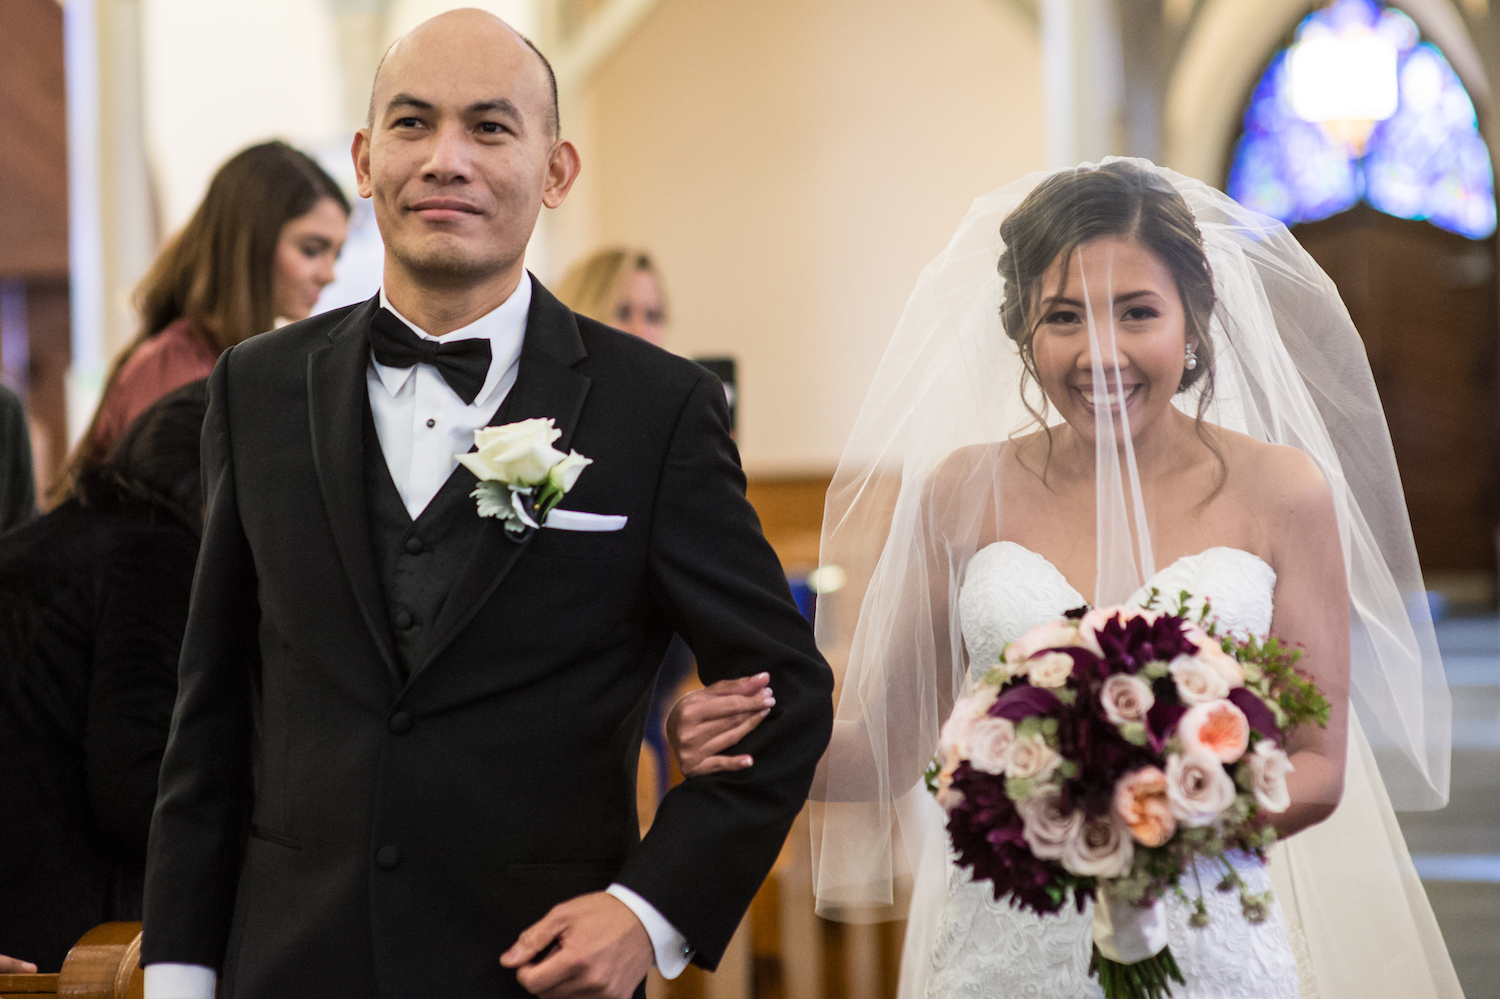 leah-being-walked-down-aisle-church-ceremony-nj-wedding-photography